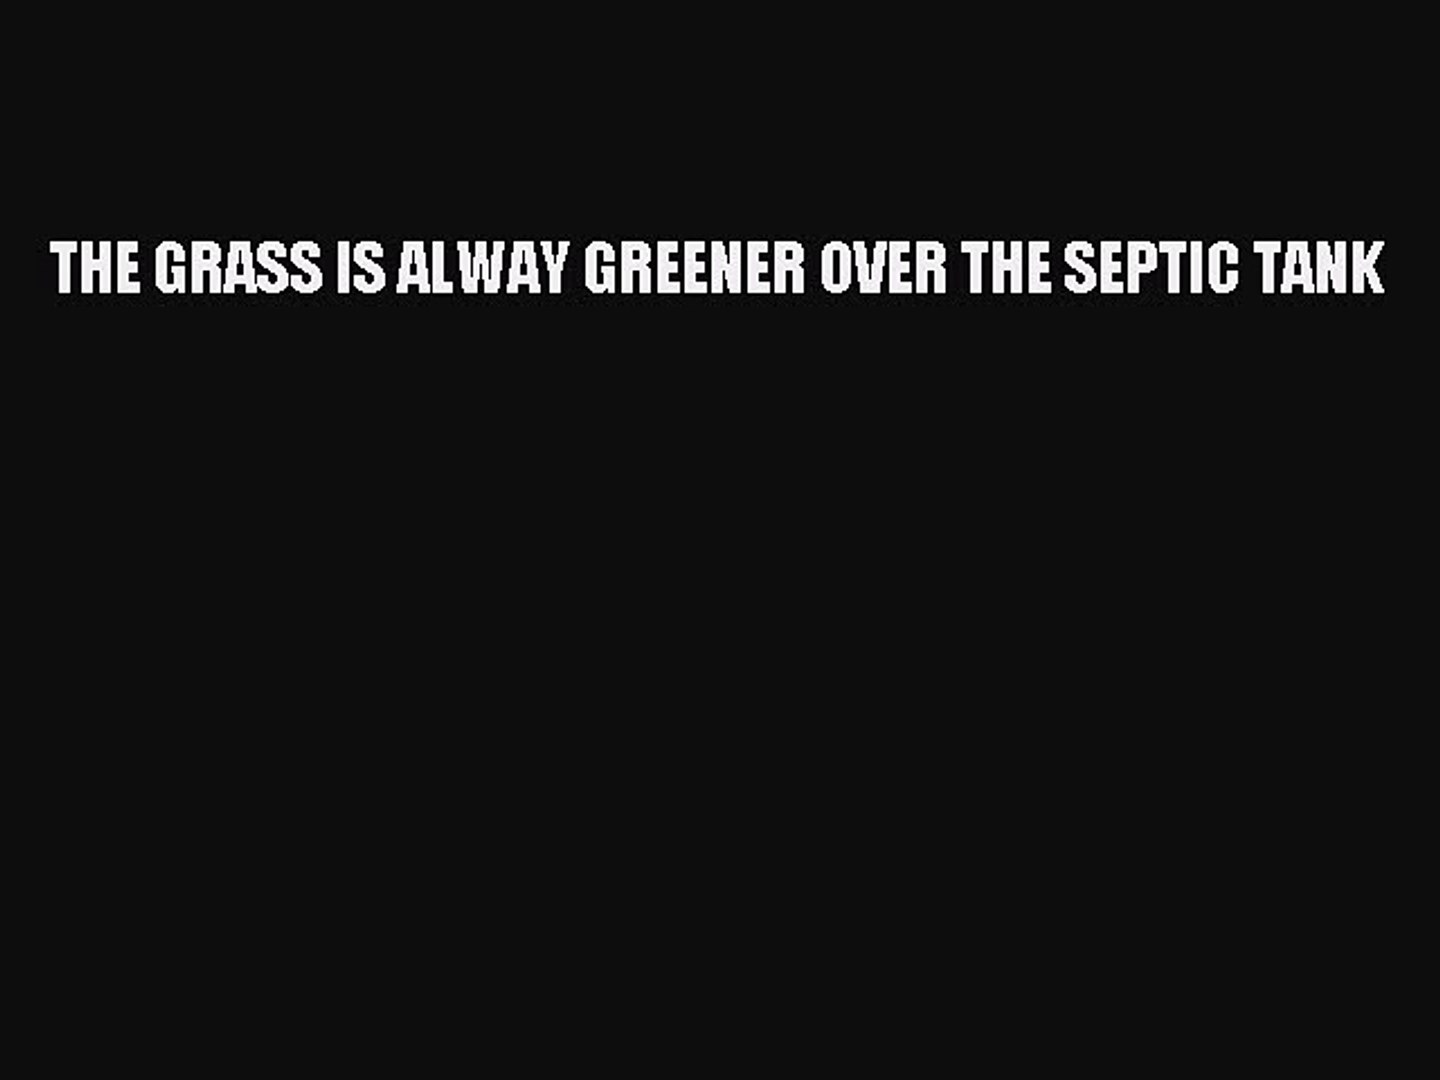 Pdf The Grass Is Alway Greener Over The Septic Tank Read Online Video Dailymotion